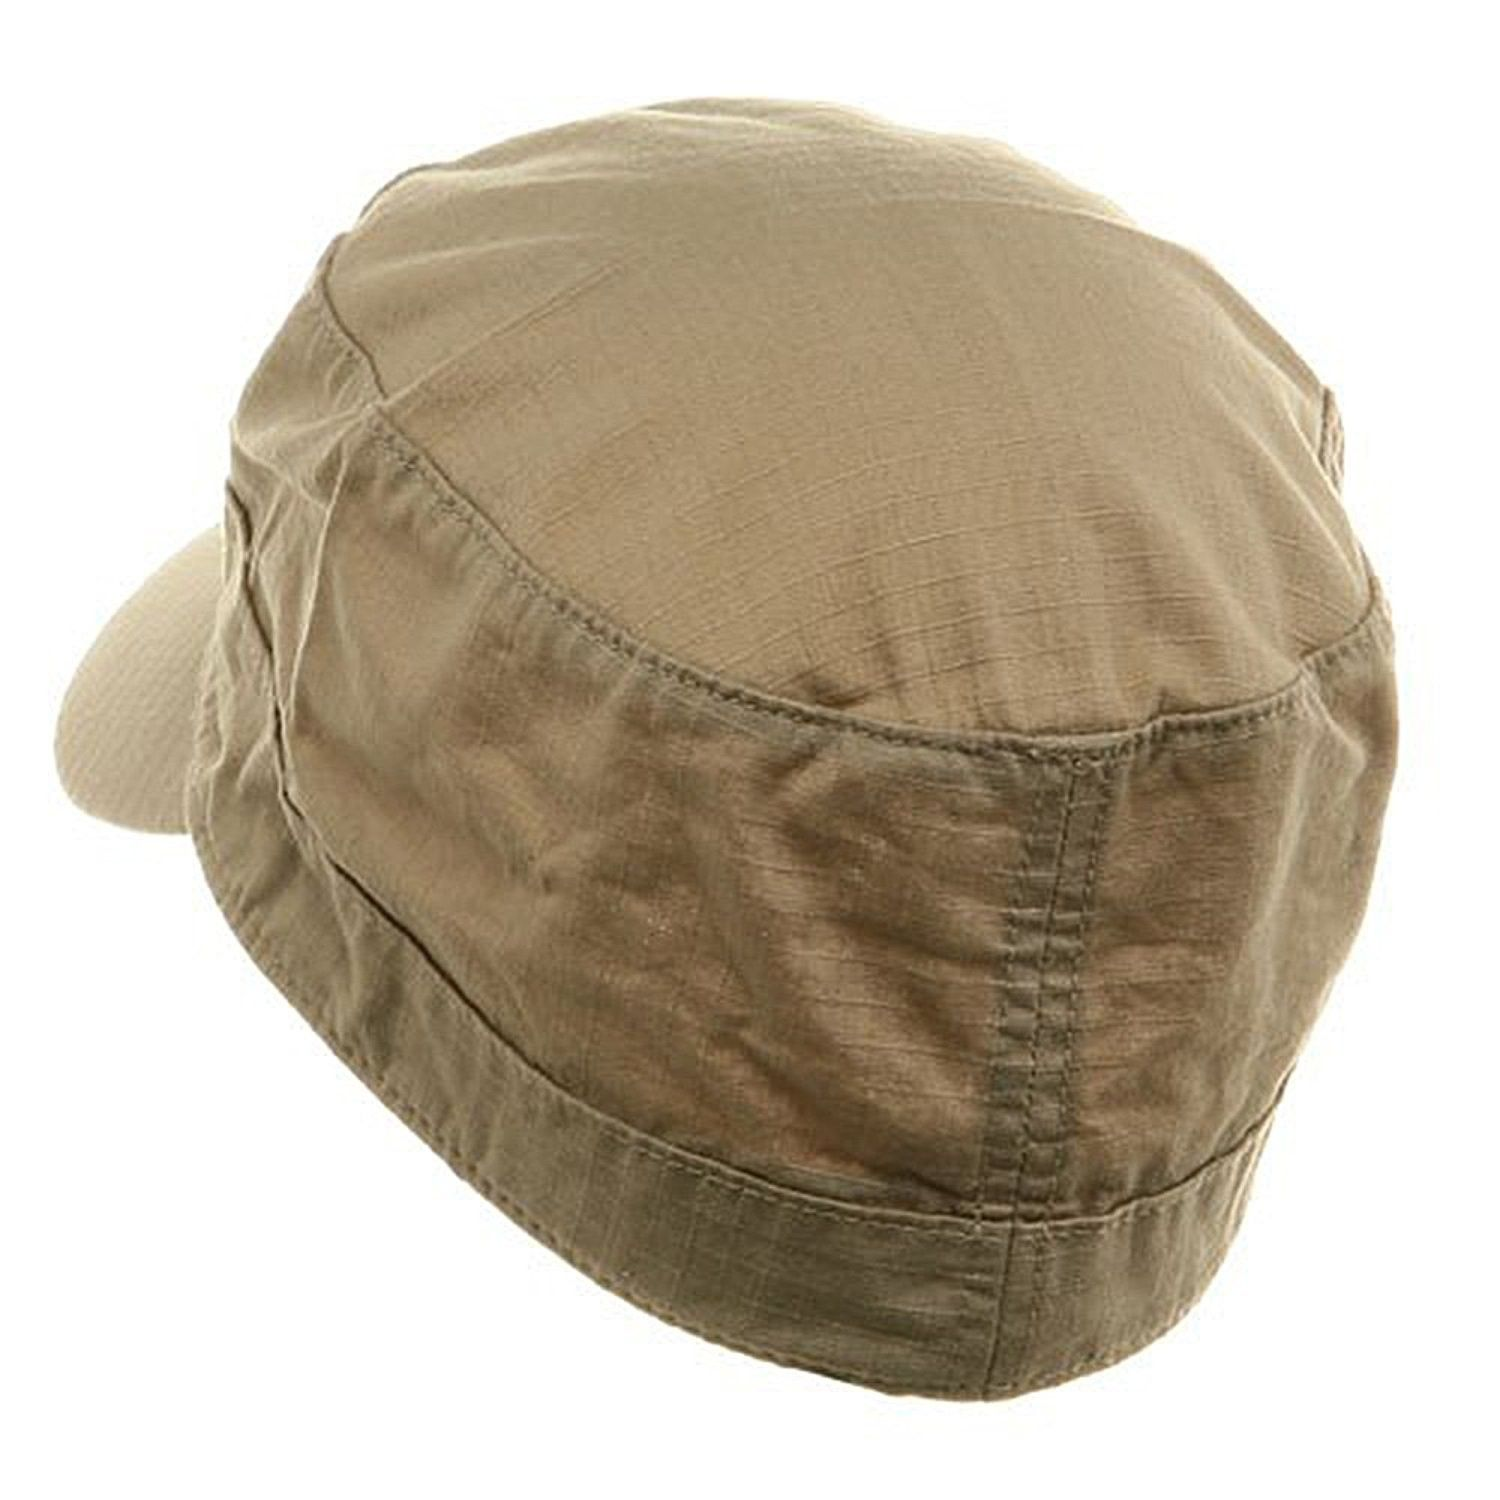 f5bc76c1 Fitted Cotton Ripstop Army Cap-Khaki W32S31F - CO111GHYYEB - Hats & Caps,  Men's Hats & Caps, Baseball Caps #hats #caps #mensstyle #mensfashion  #shopping ...